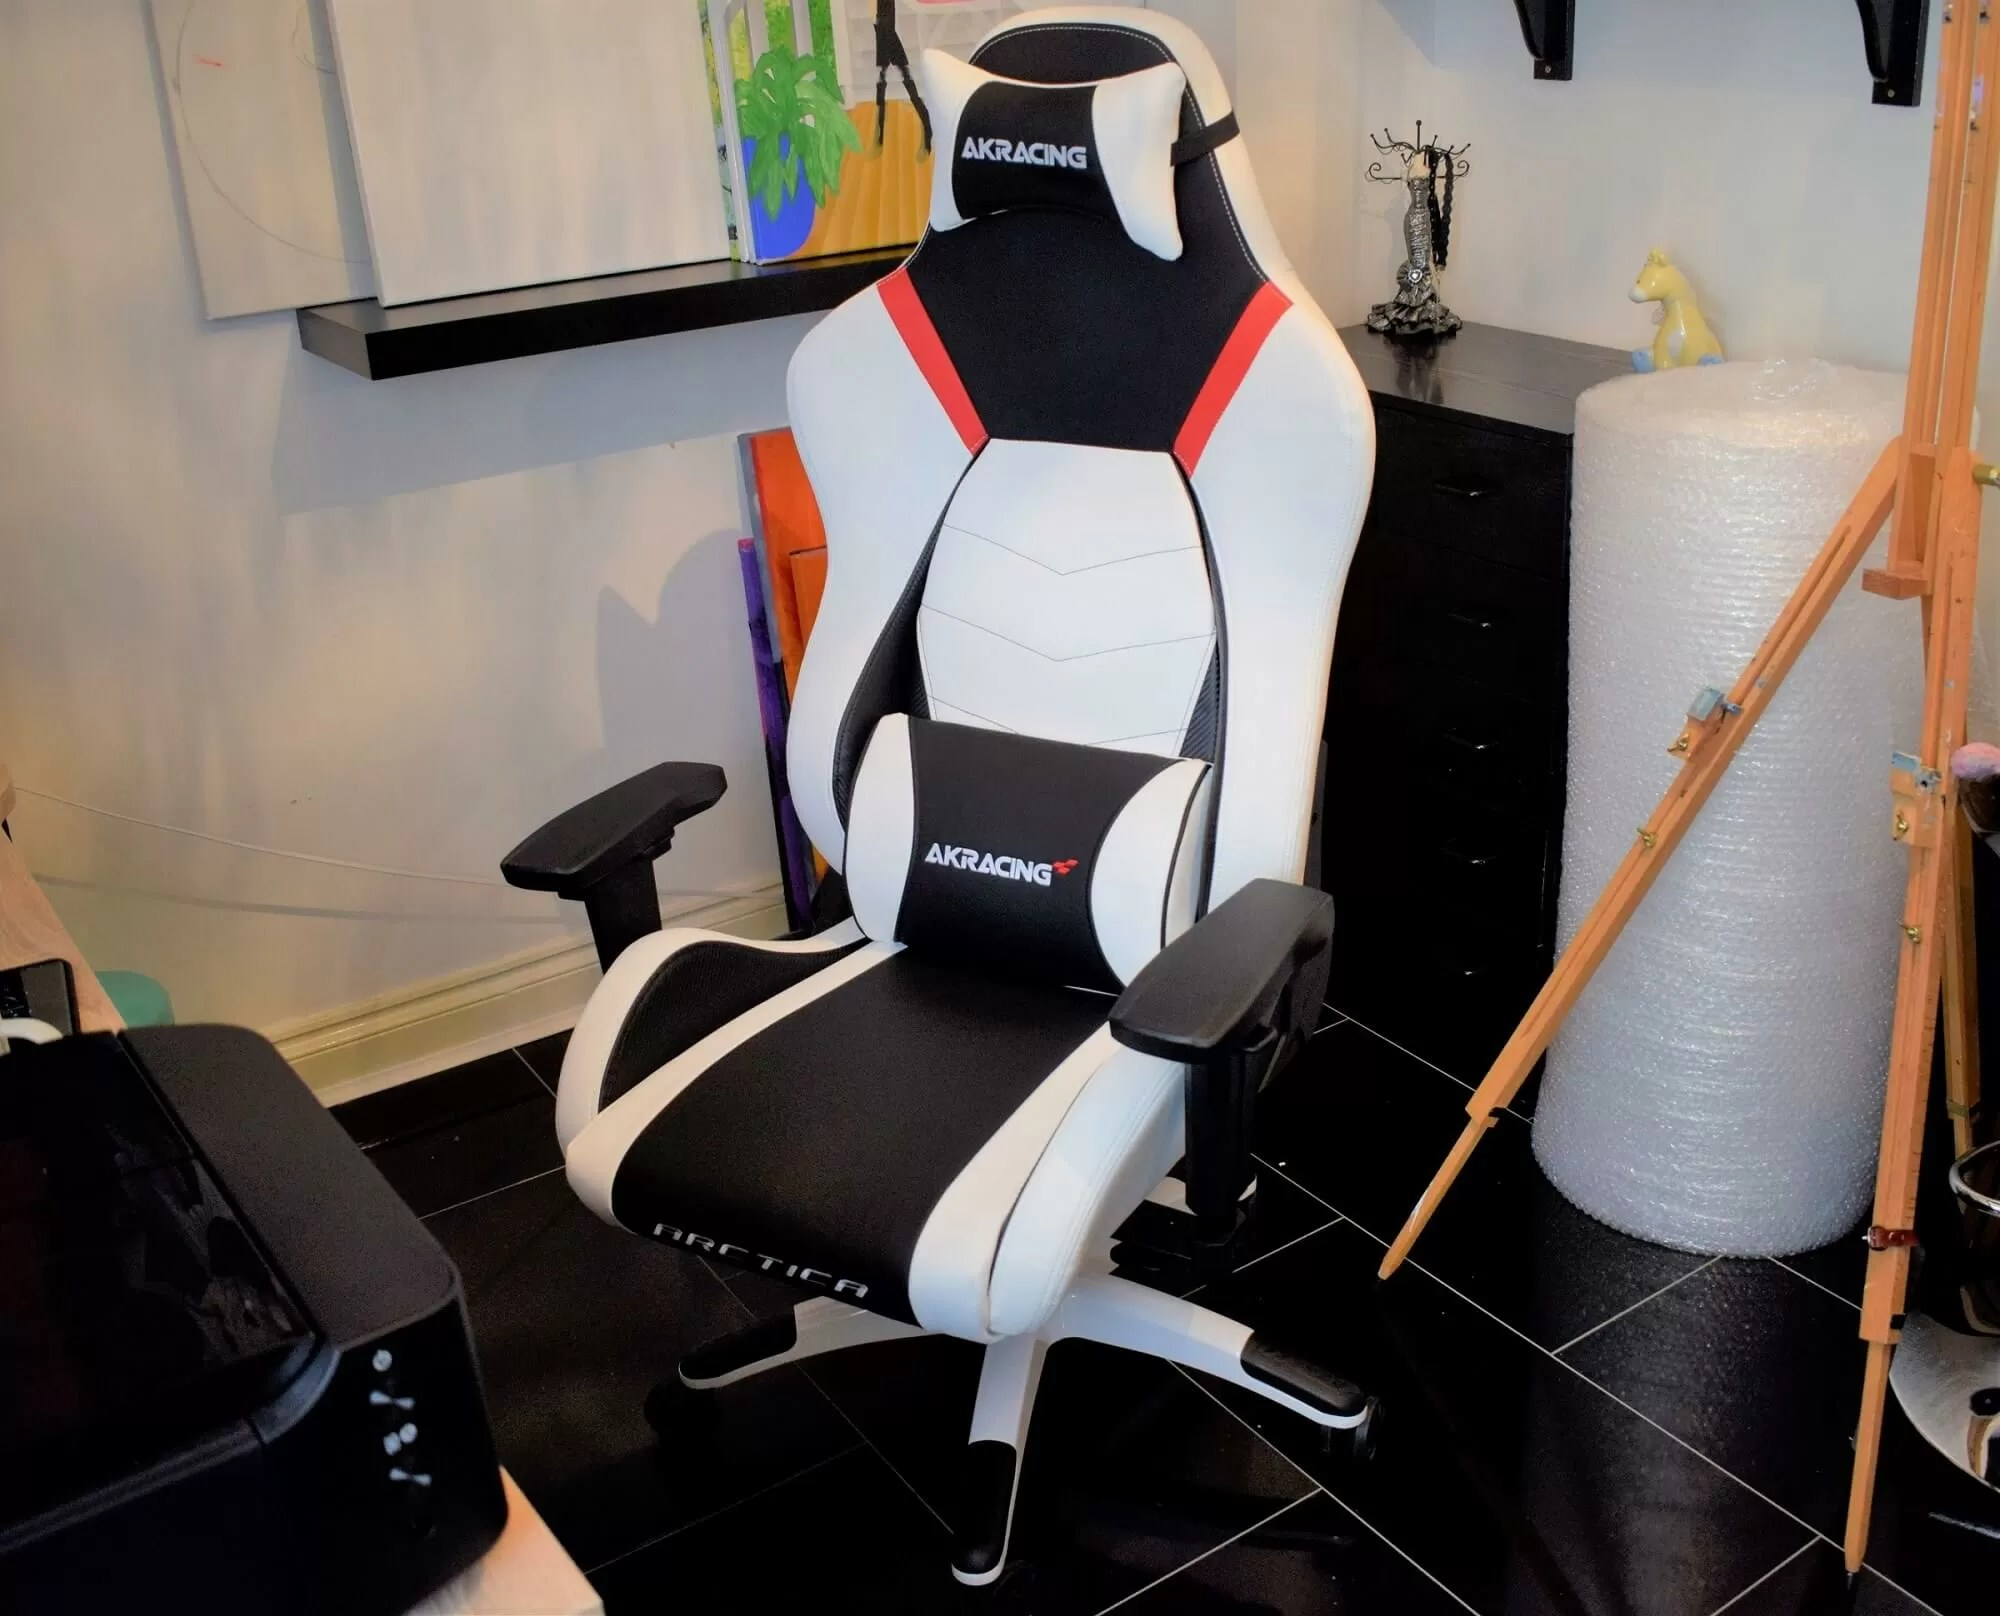 Will Chair Akracing Arctica Gaming Chair Review Style Meets Comfort Techspot